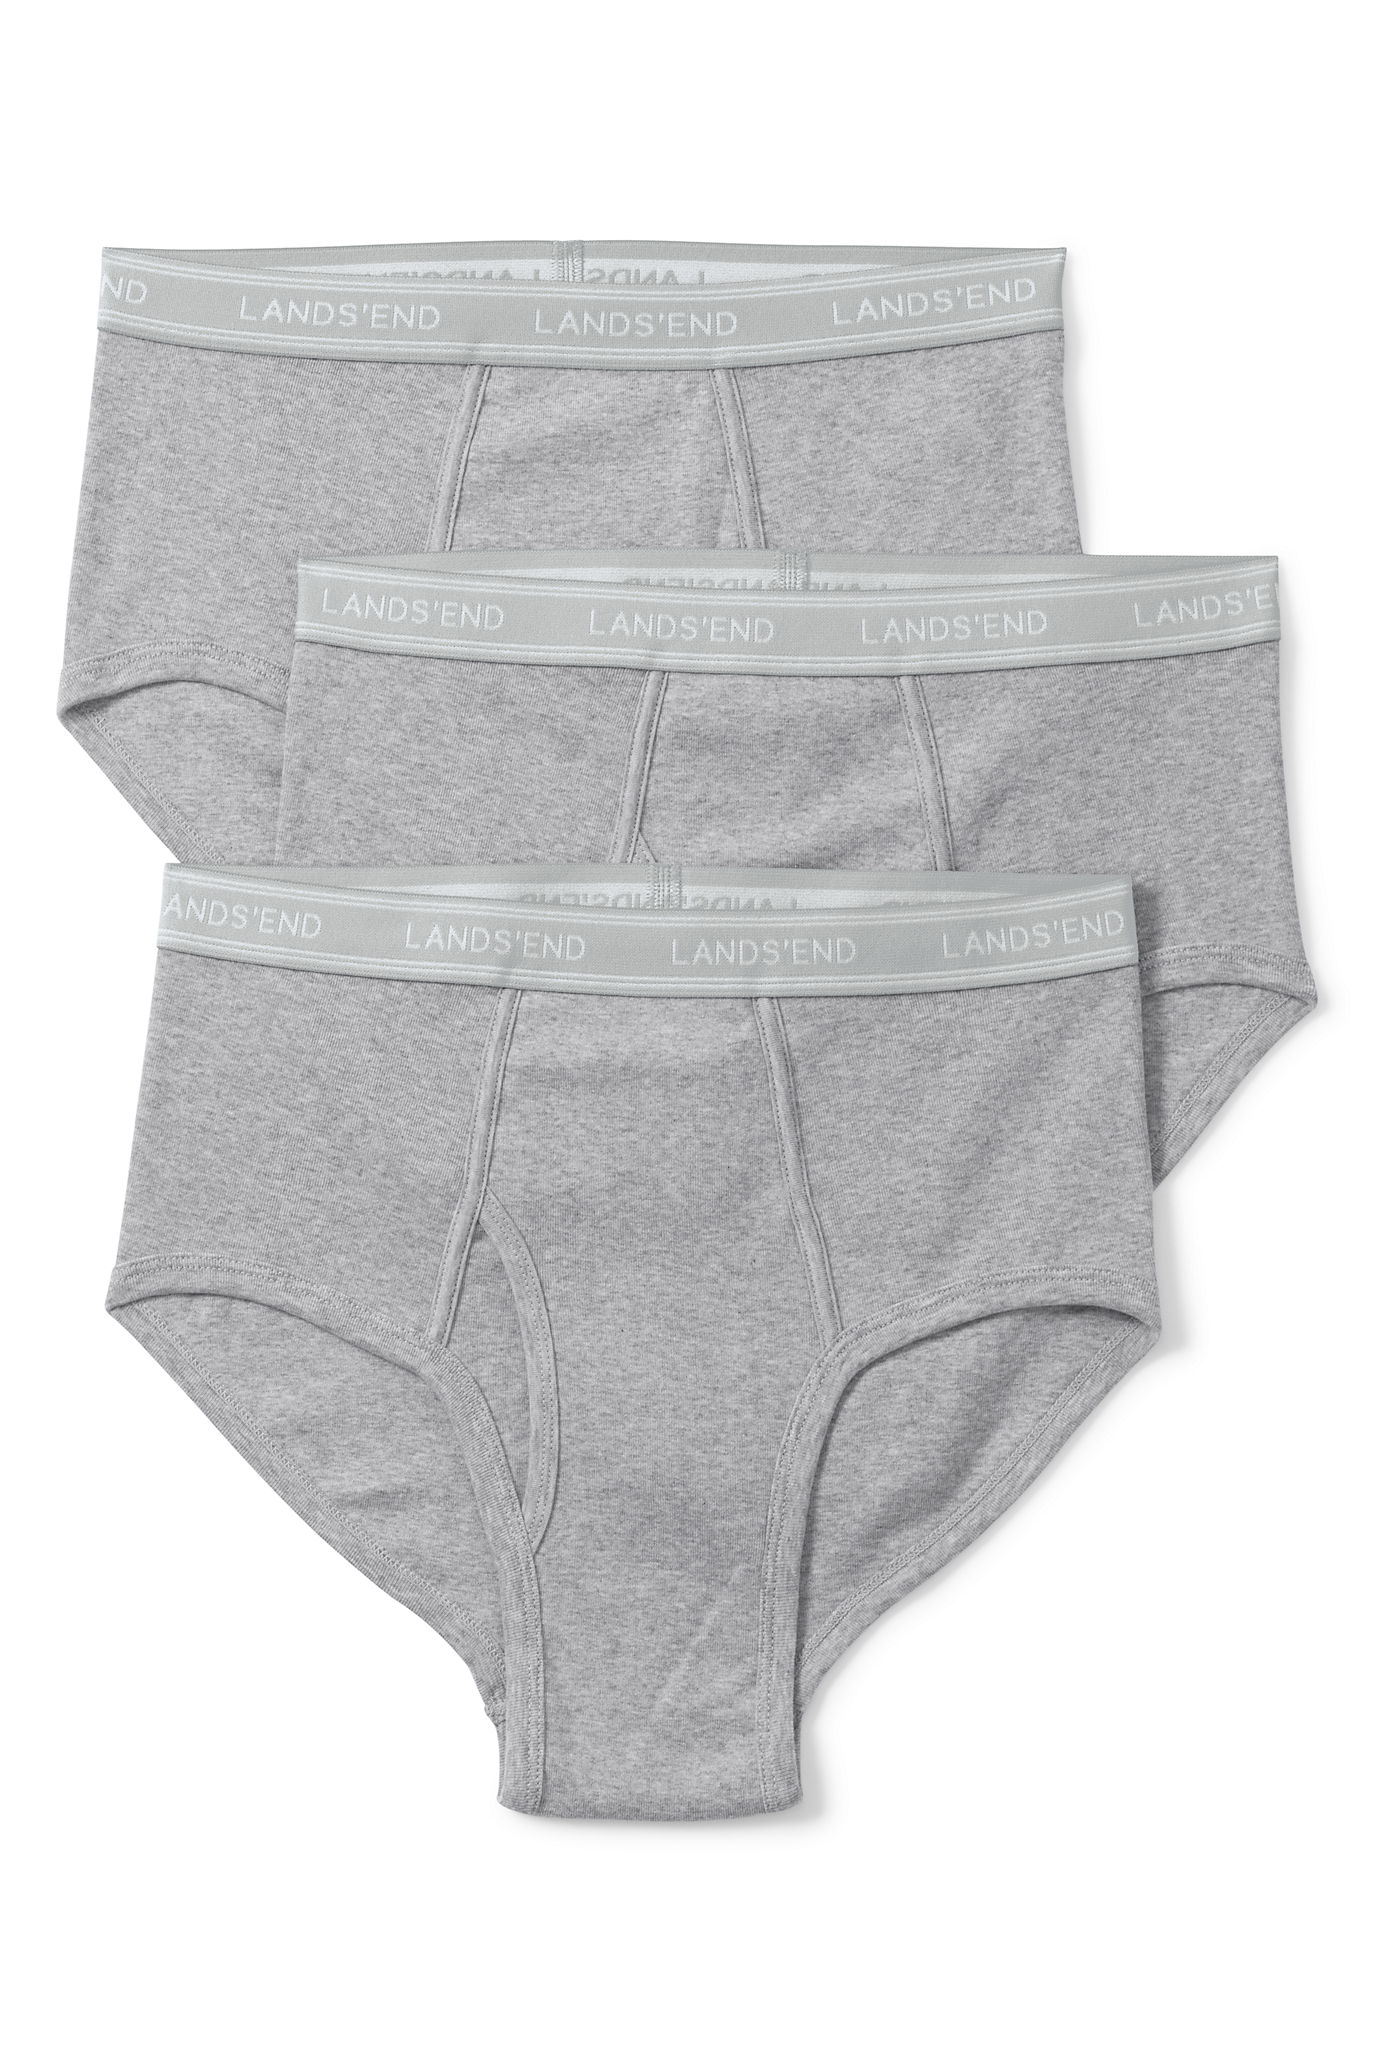 Men's Knit Underwear 3 Pack - Briefs